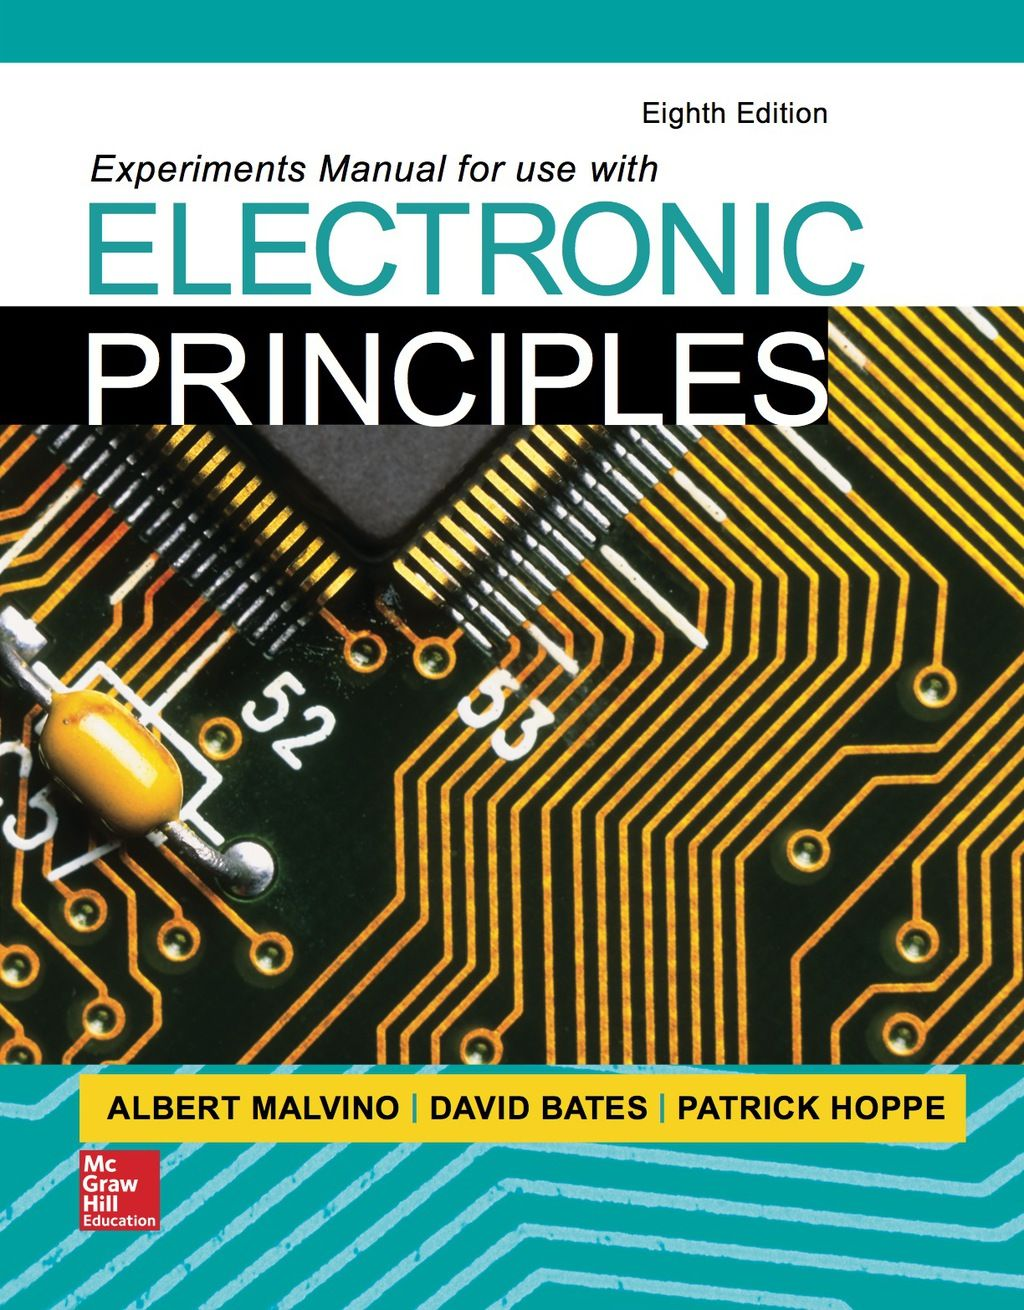 Experiments Manual for use with Electronic Principles (eBook Rental